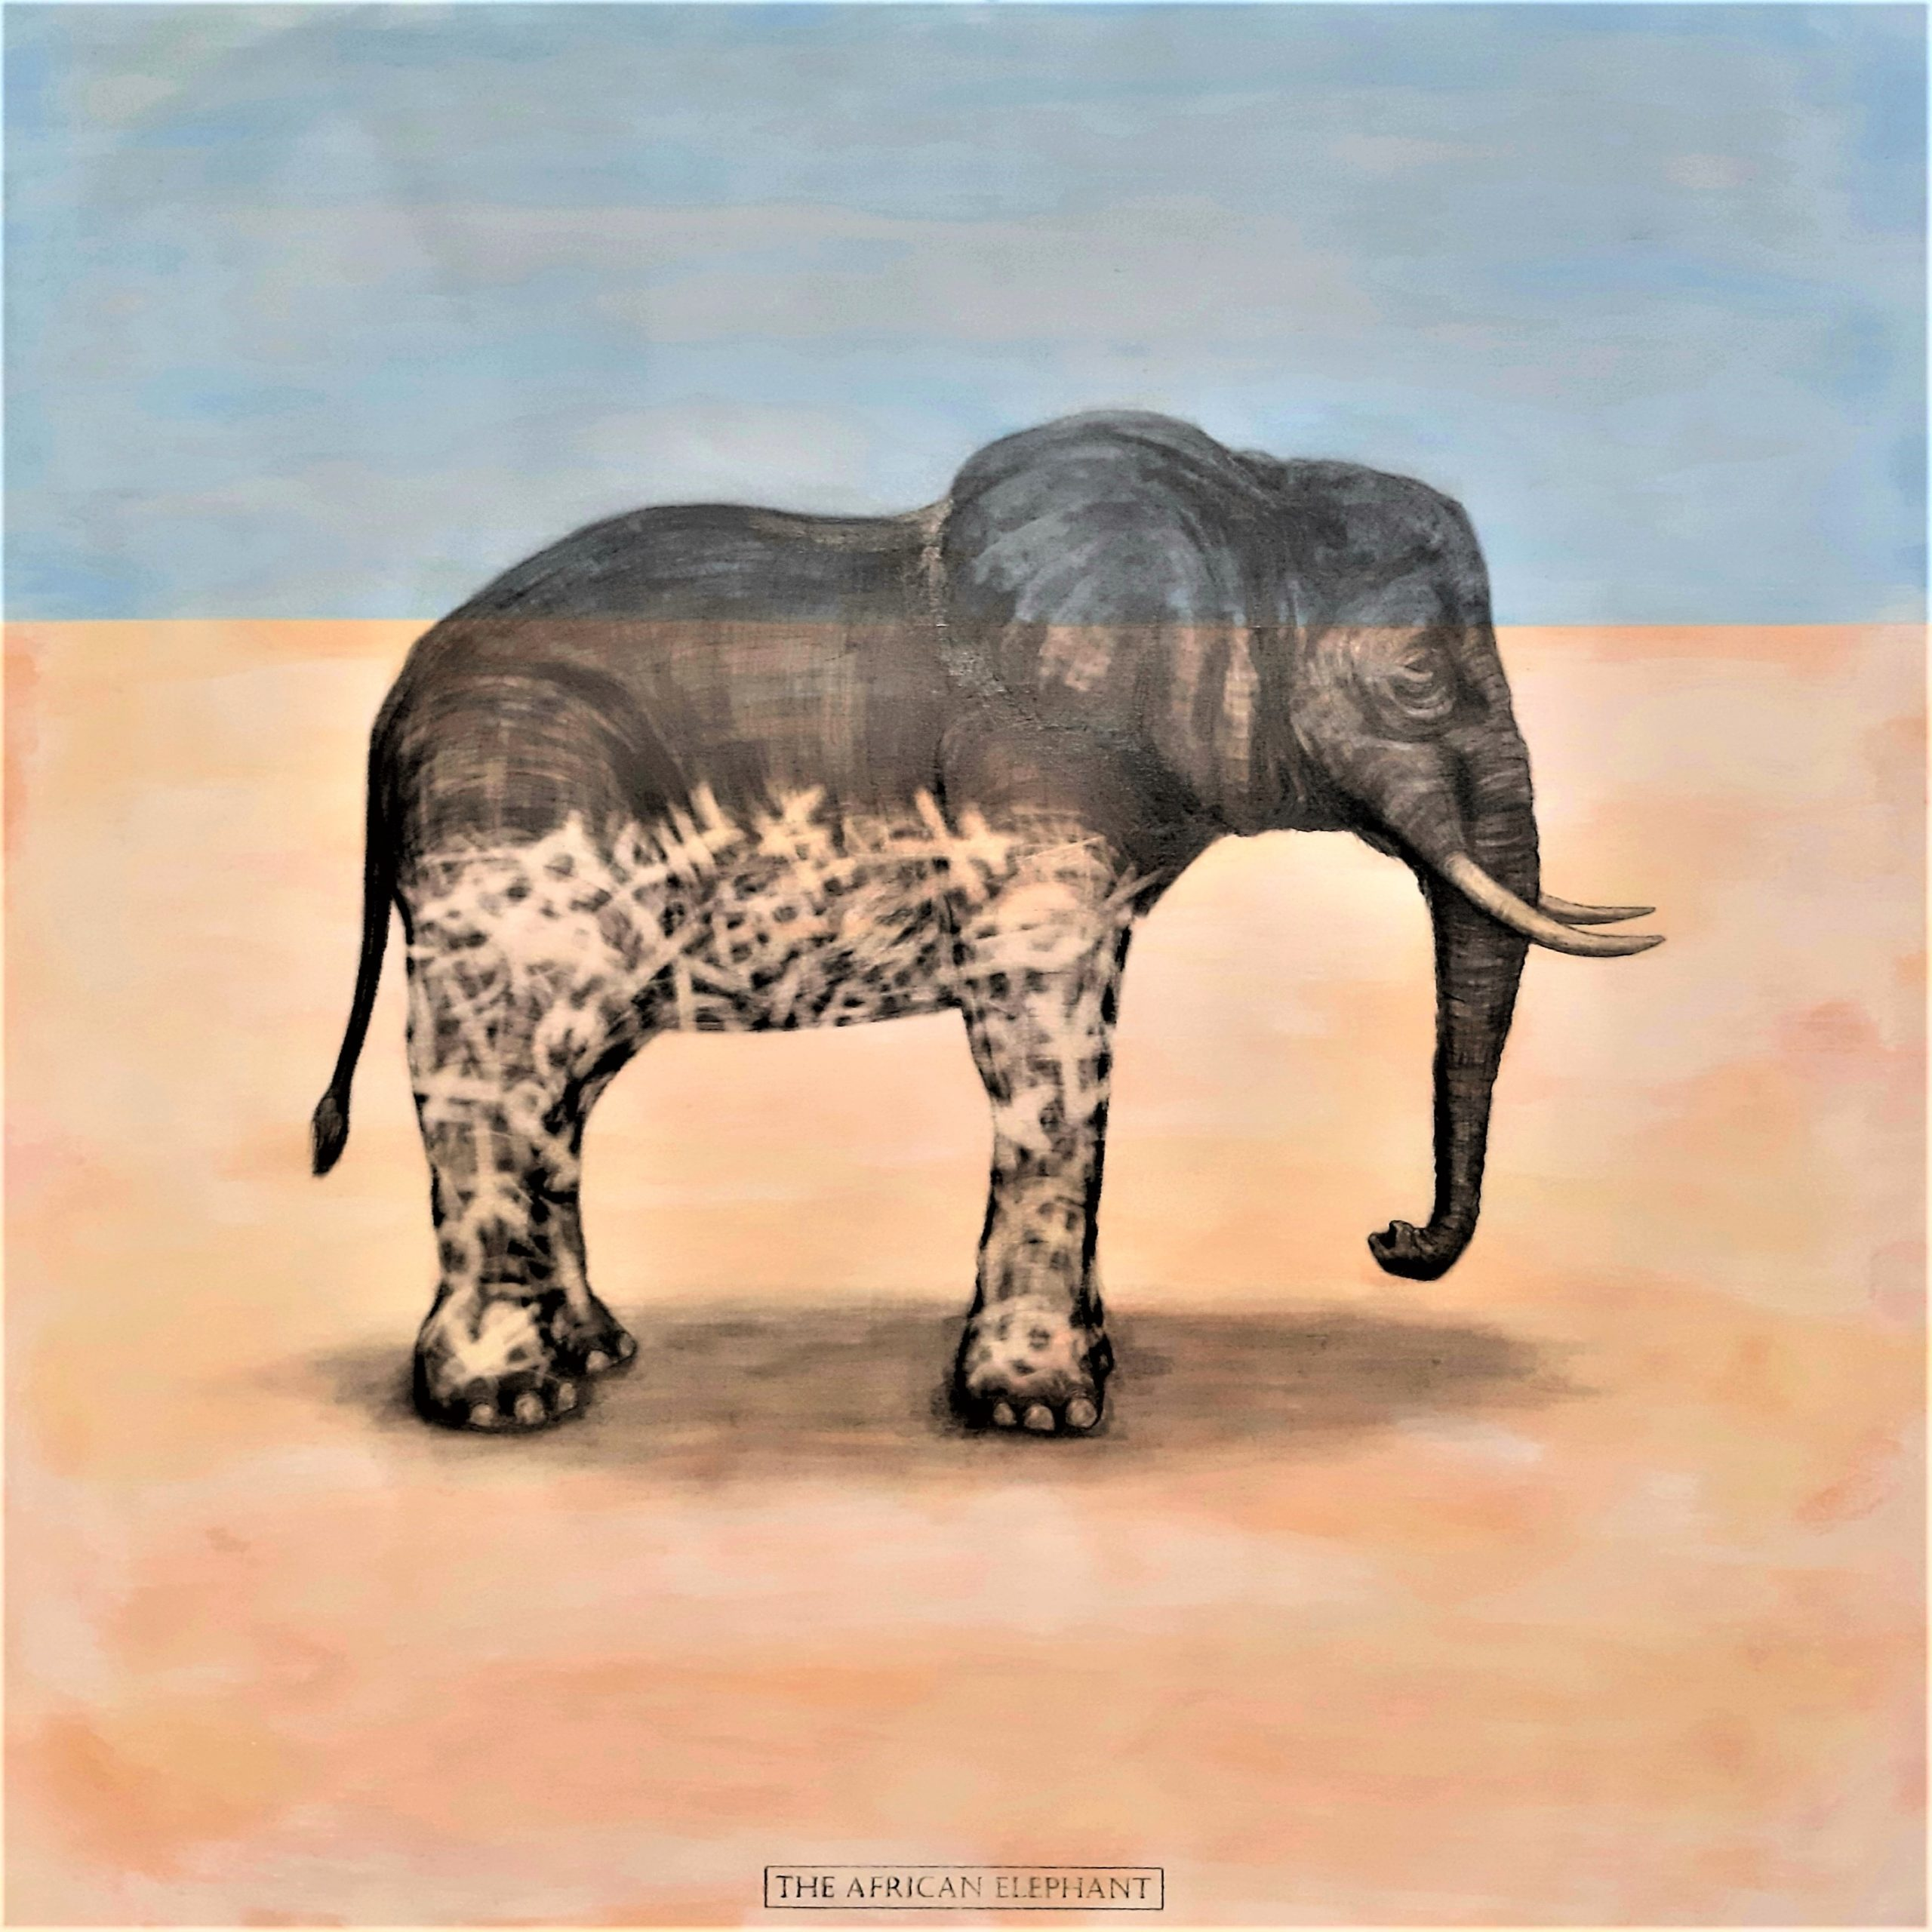 The African Elephant, 2019. Graphite and acrylic on plywood. Framed in white varnished obeche. 65 x 65 x 4 cm. £1,200